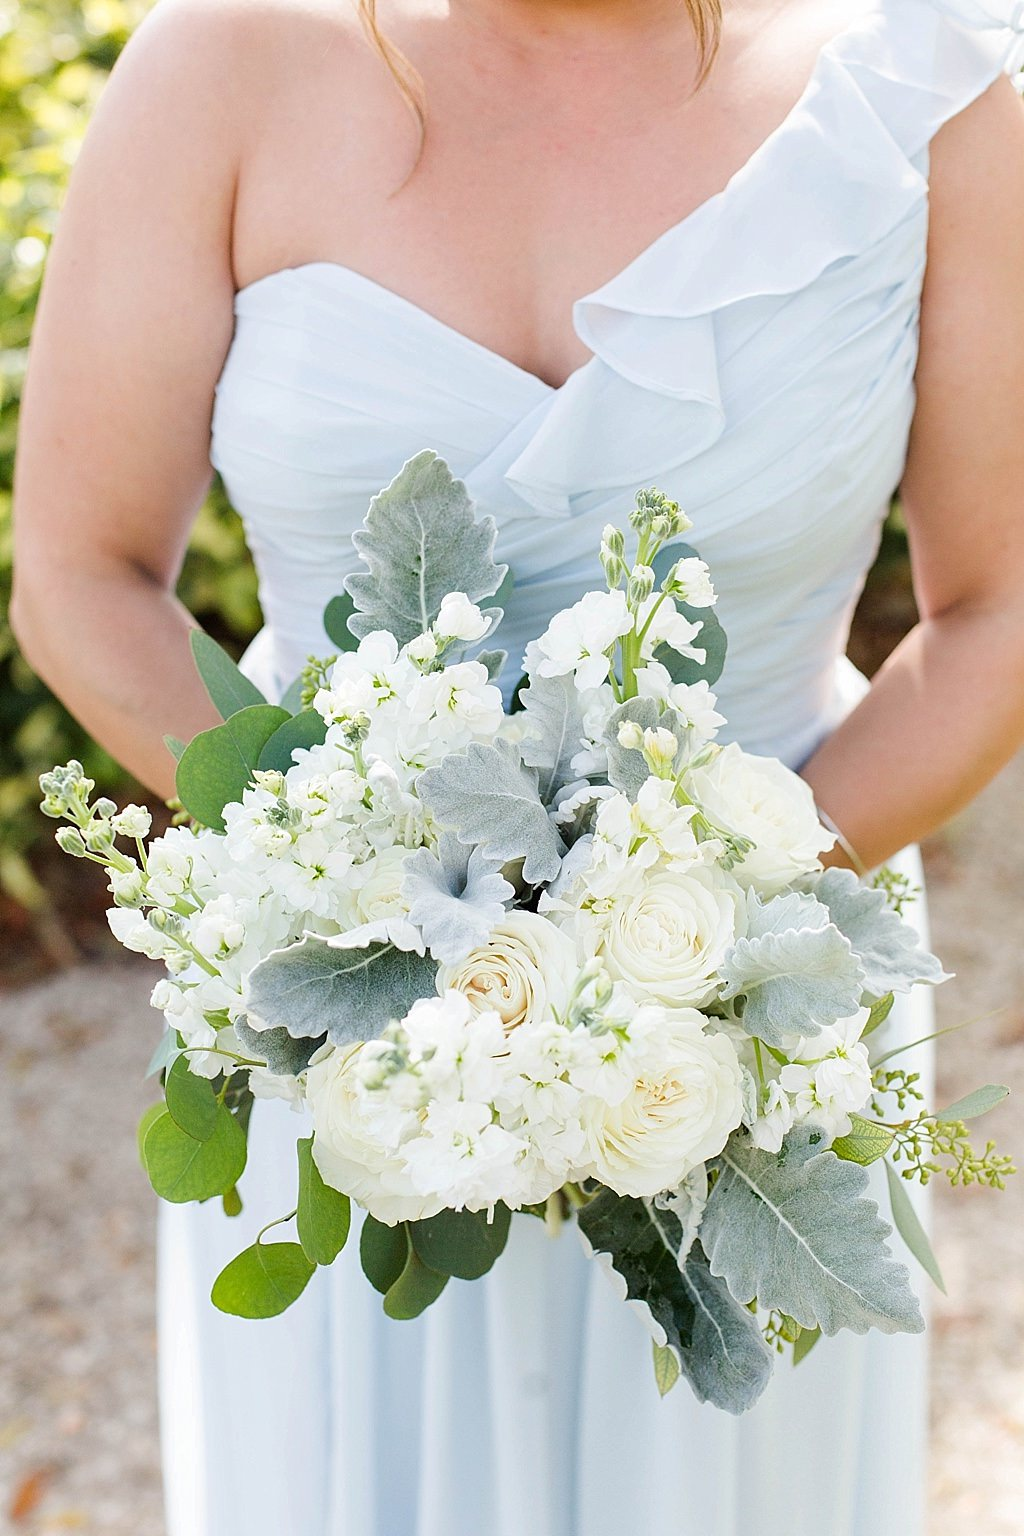 White Ivory Dusty Miller And Greenery Floral Bouquet